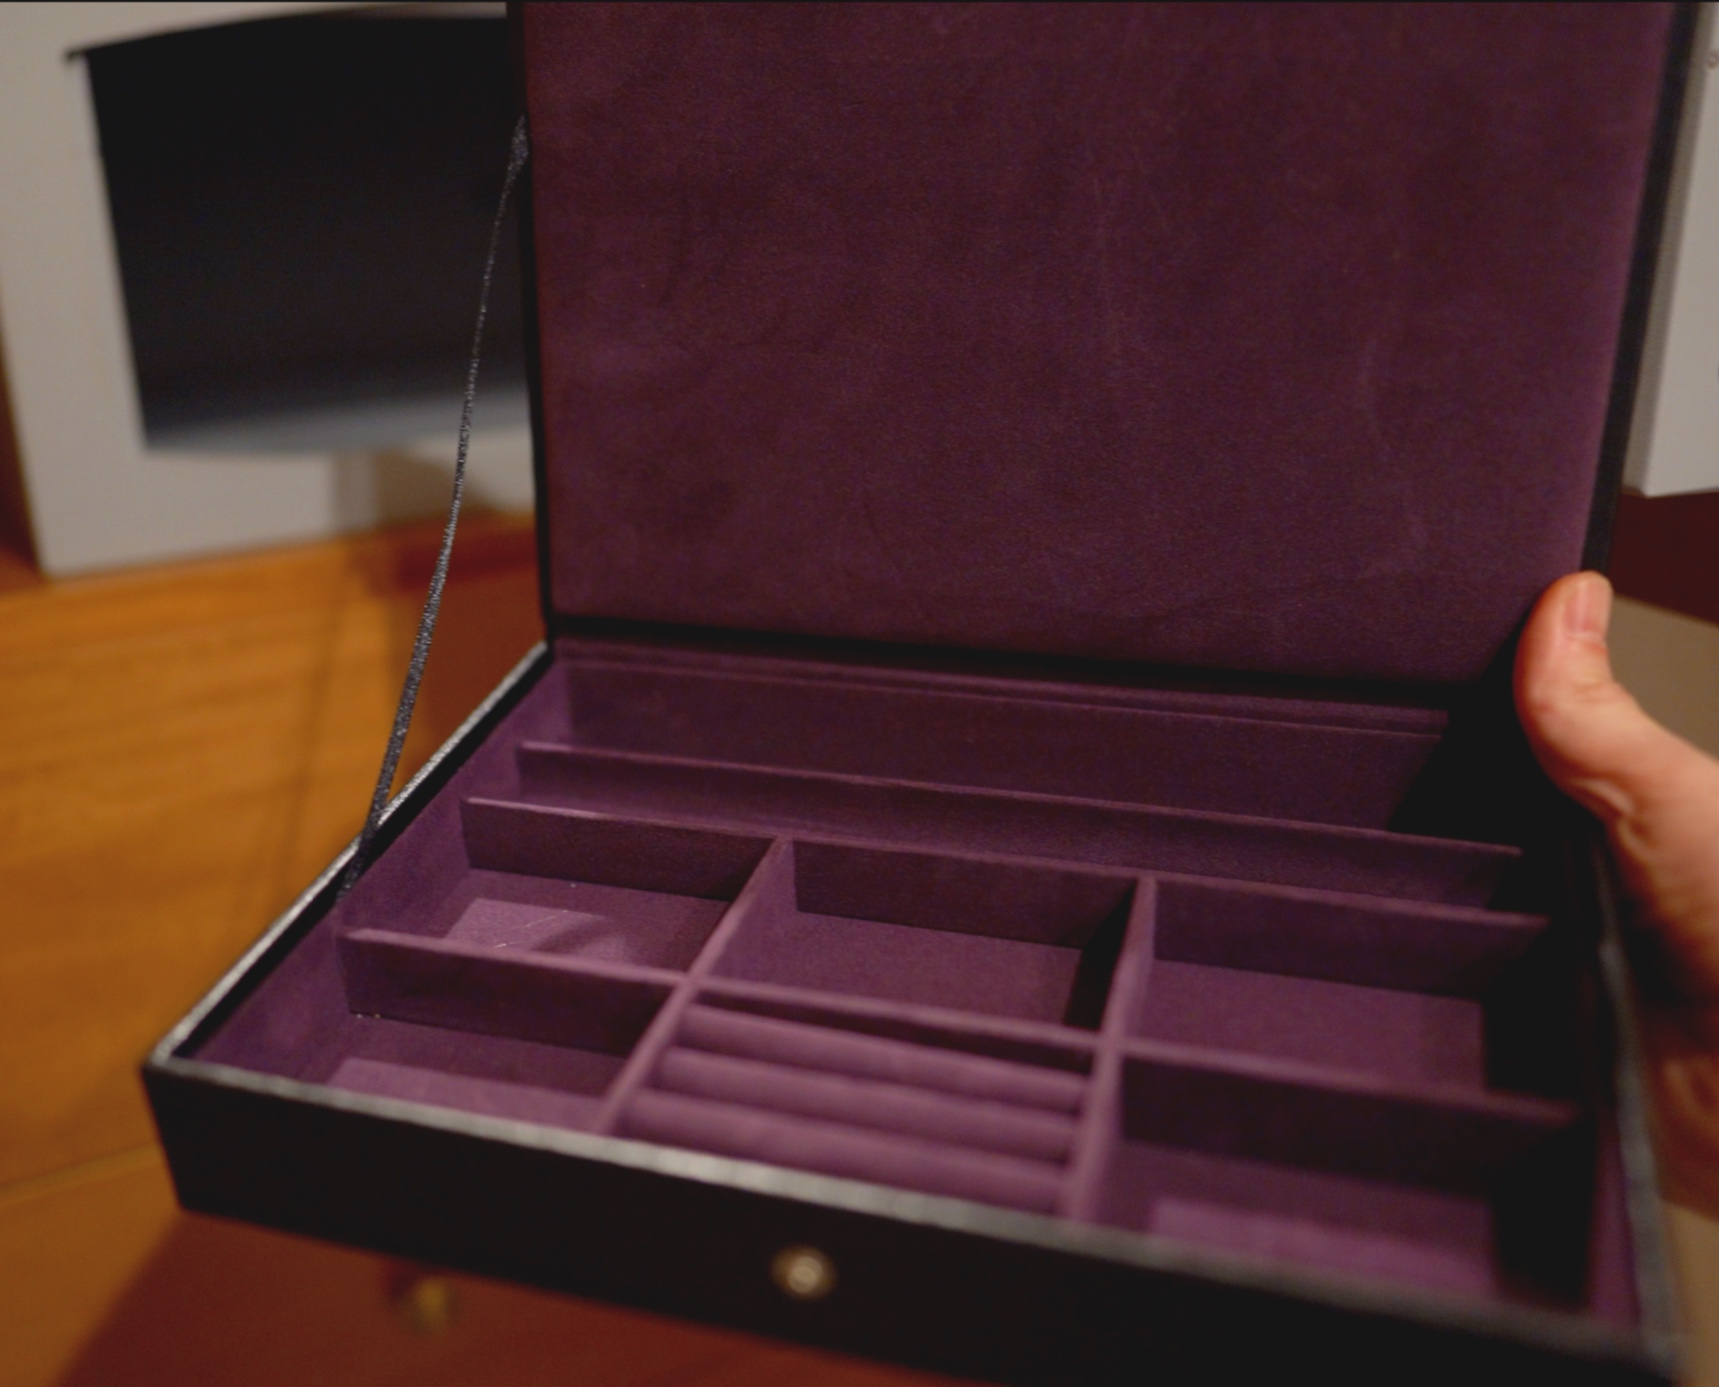 If only I had enough jewellery to fill this box!